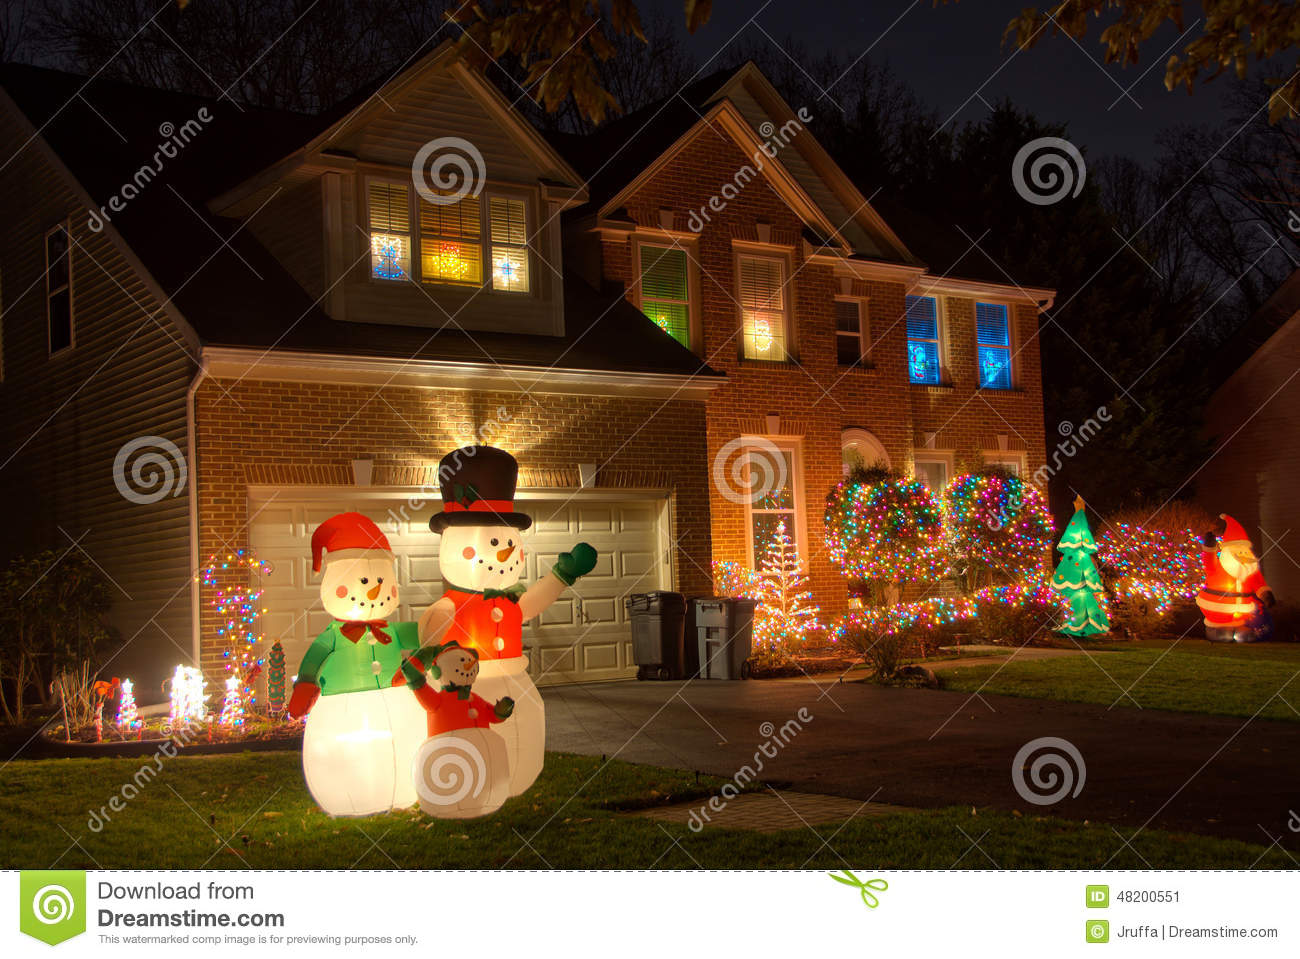 Christmas Decorations For Neighborhood Entrances : Neighborhood christmas decorations stock photo image